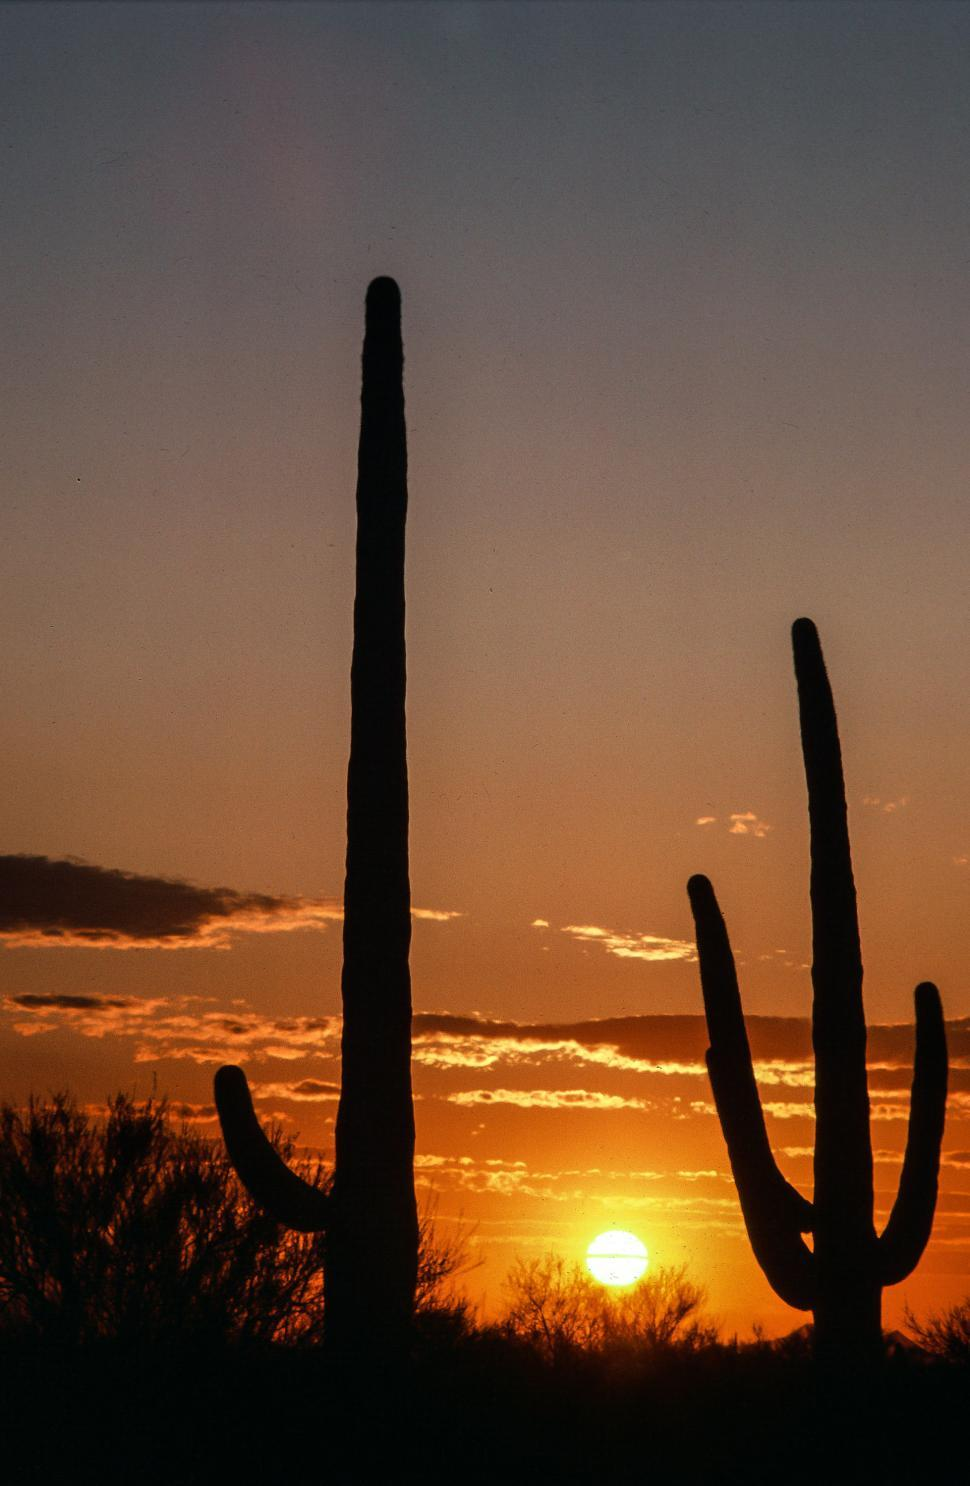 Download Free Stock HD Photo of Sunset and Saguaro Cactus Online